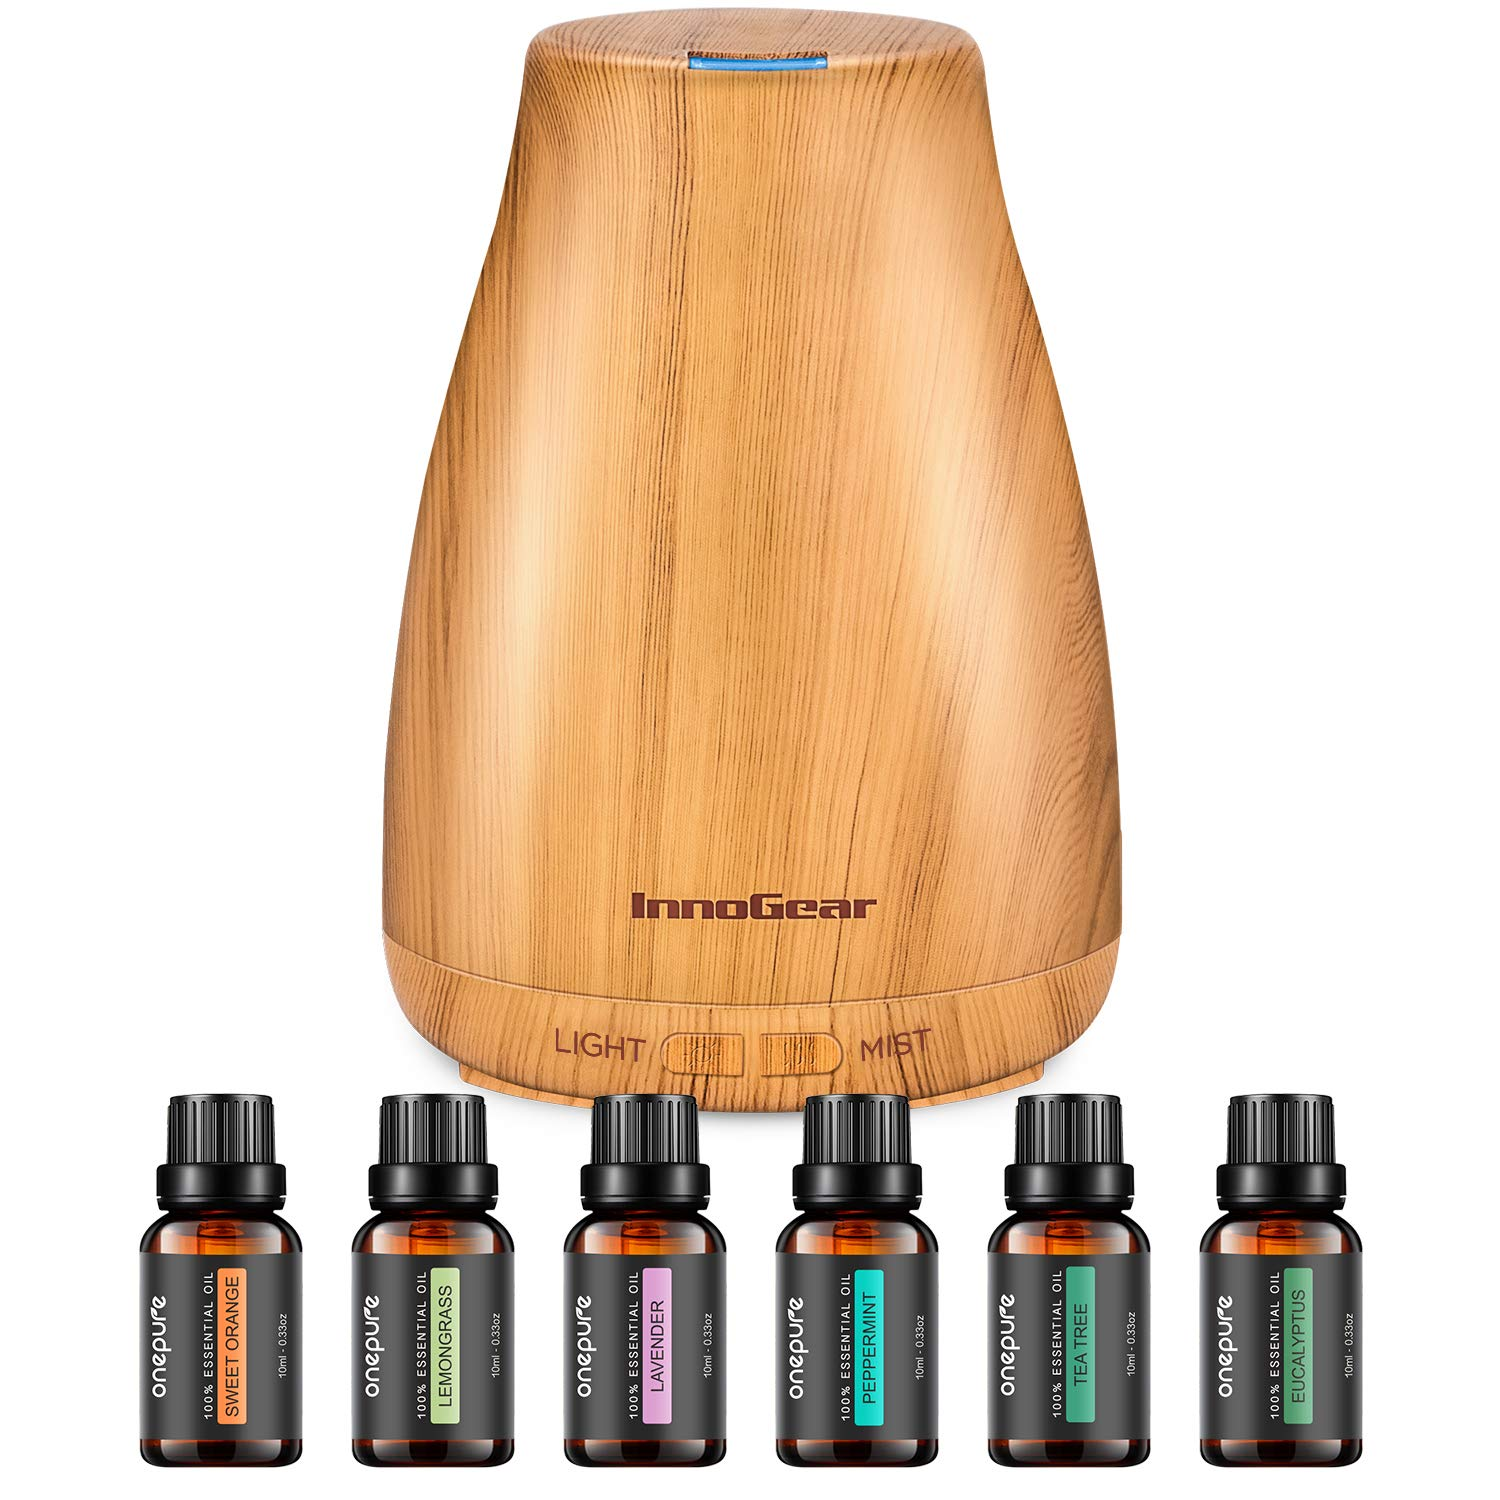 gifts-for-minimalists-diffuser